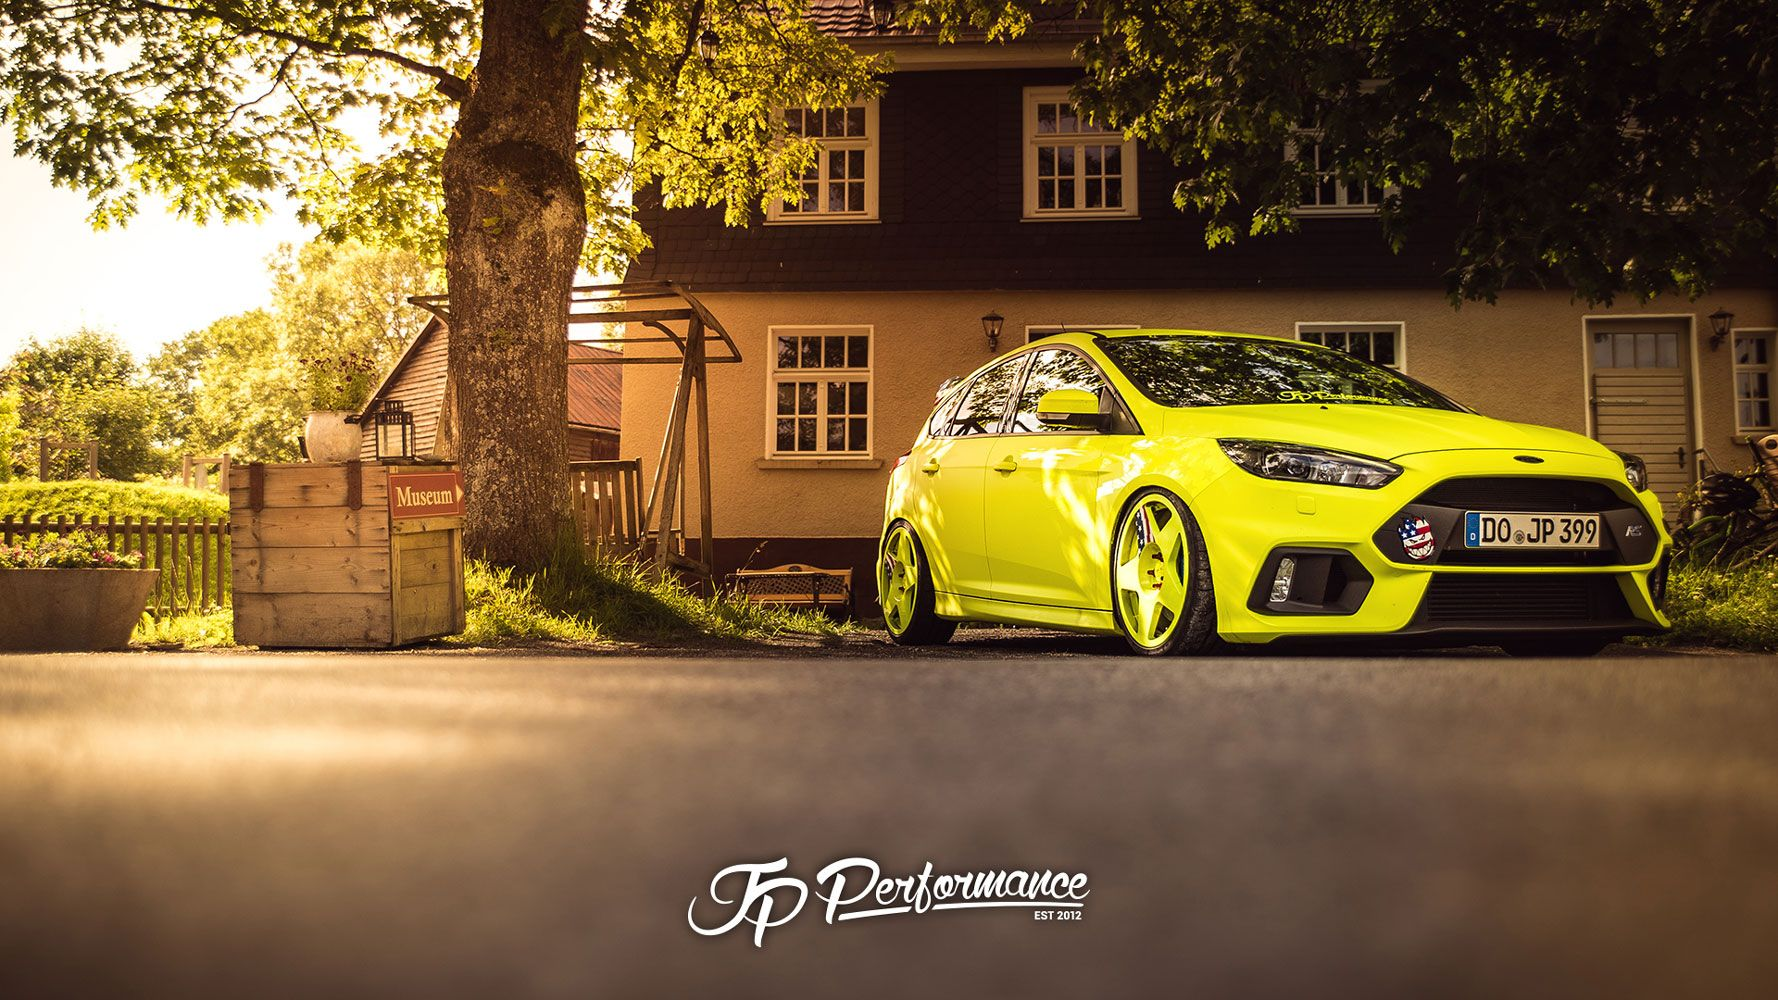 Jp Performance Ford Focus Rs Wallpaper Addicted To Motorsport